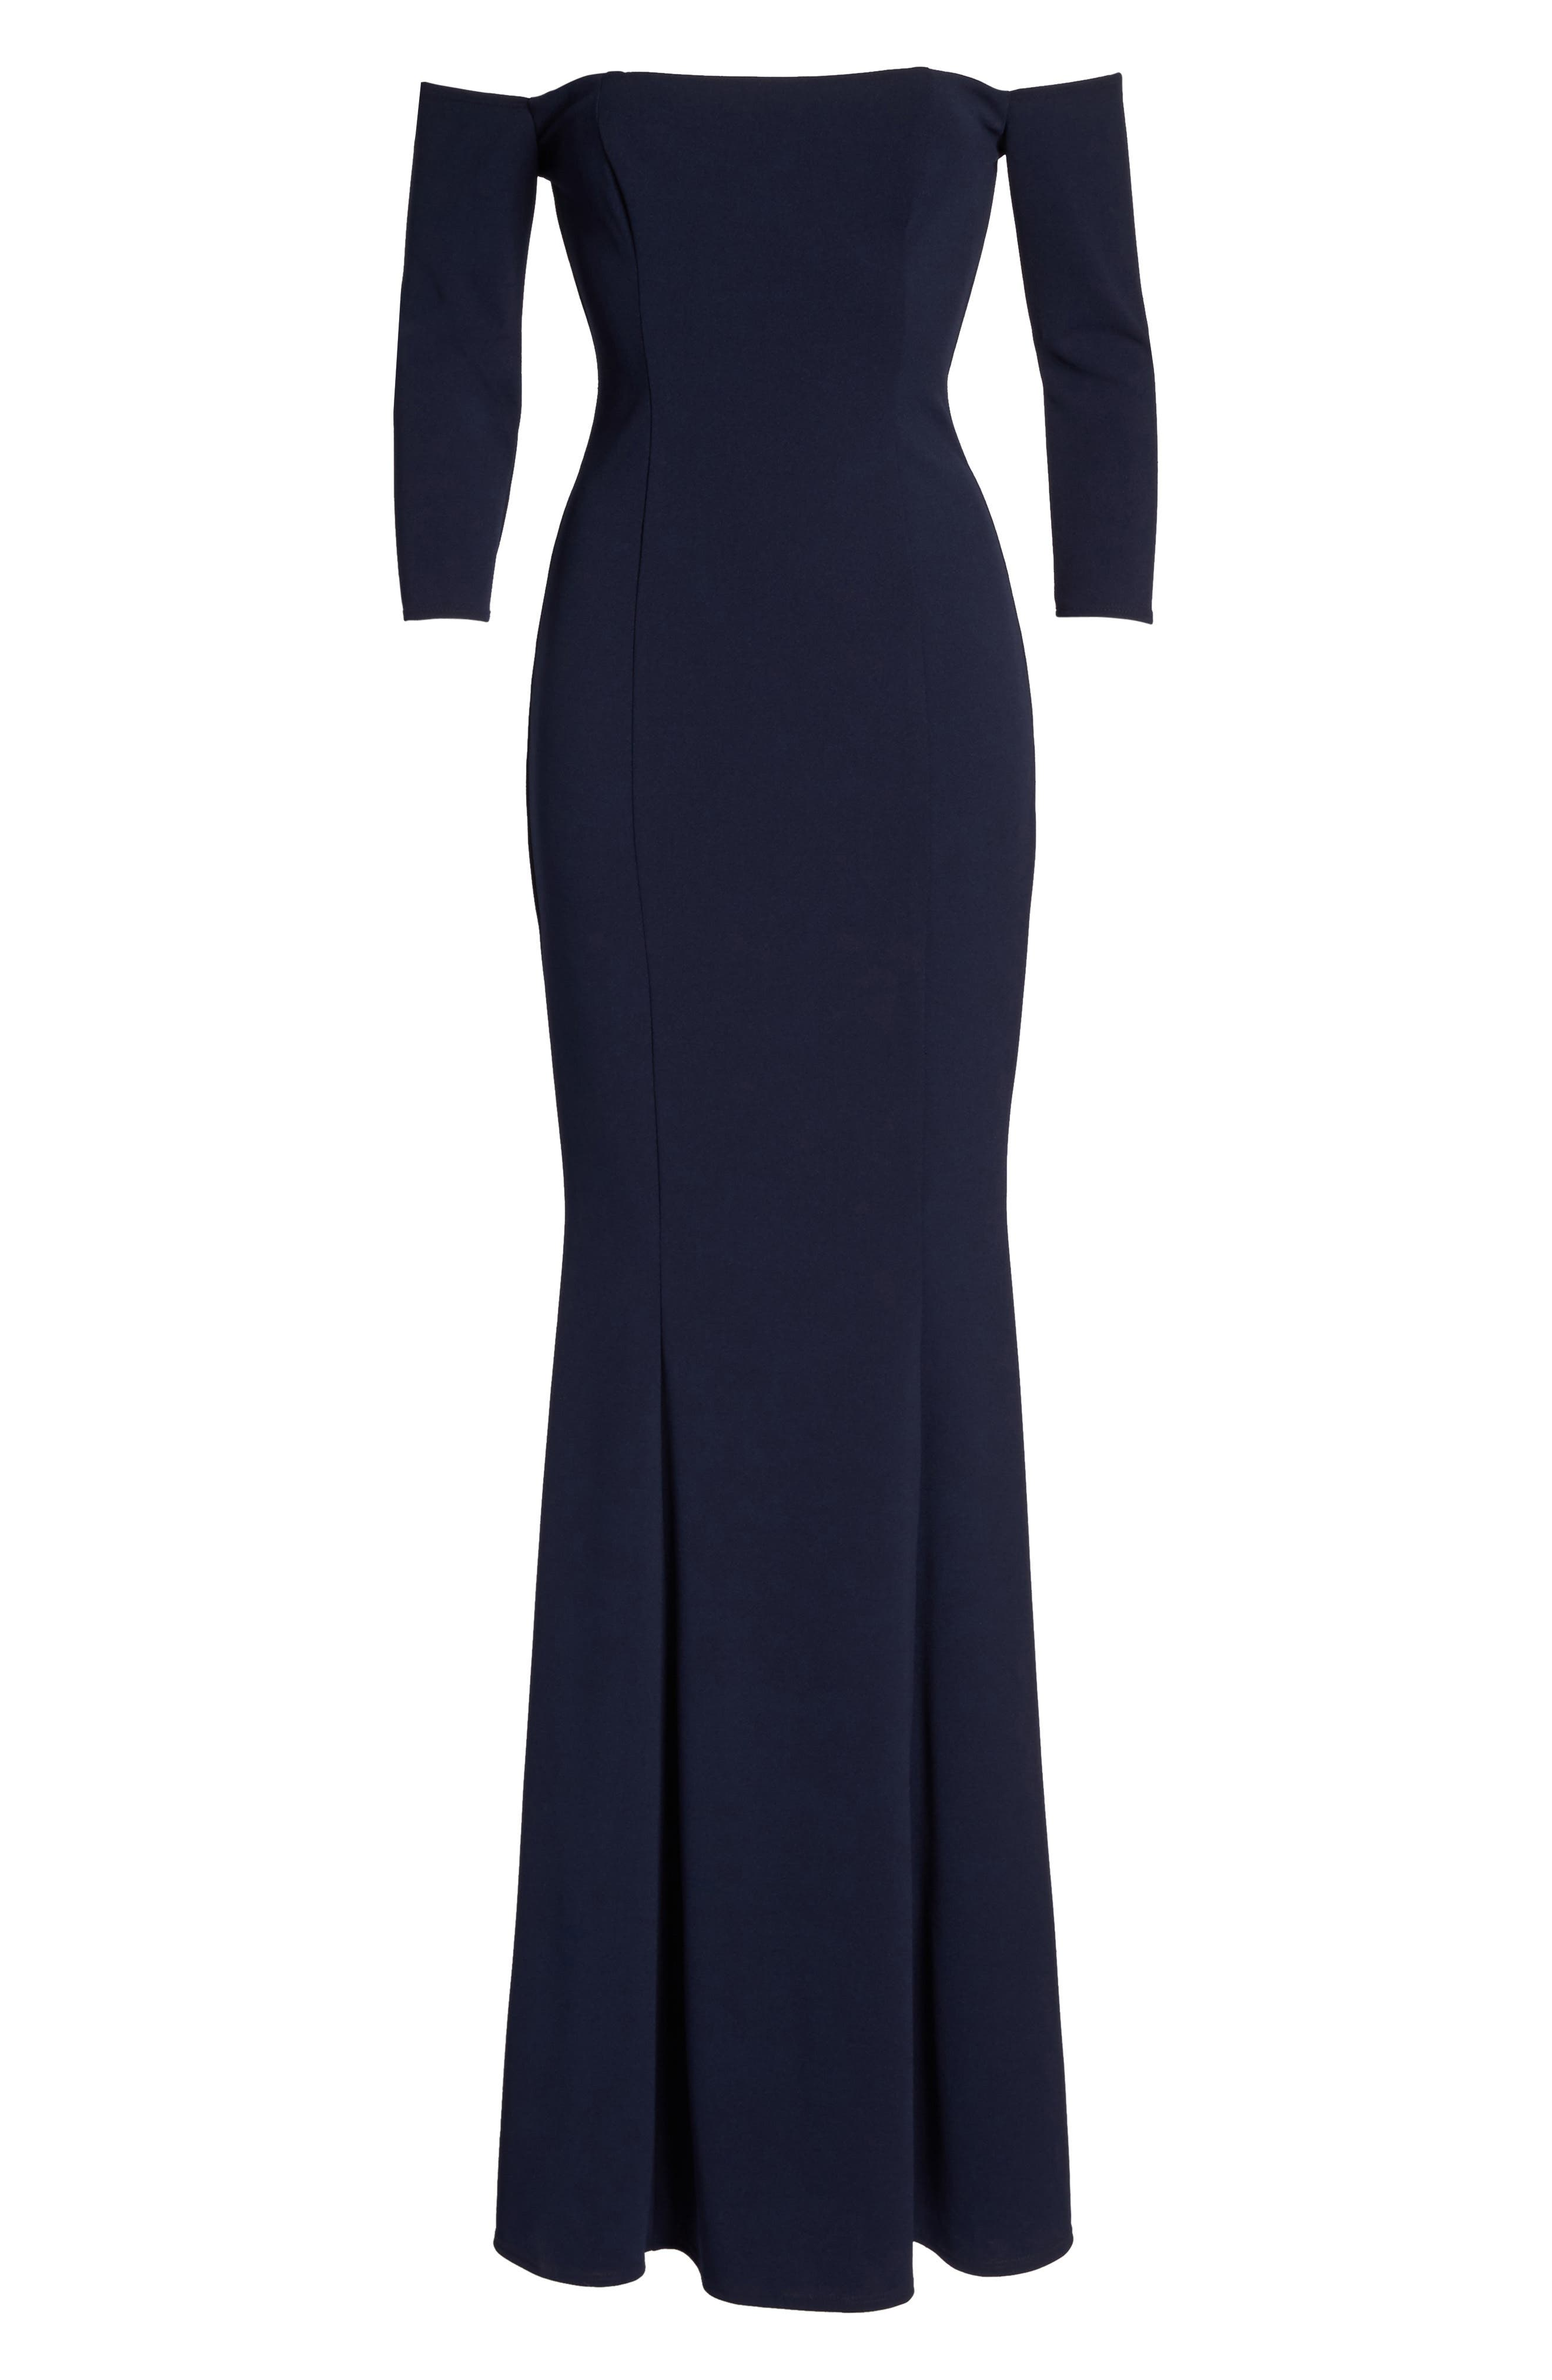 Brentwood Three-Quarter Sleeve Off the Shoulder Gown,                             Alternate thumbnail 6, color,                             NAVY